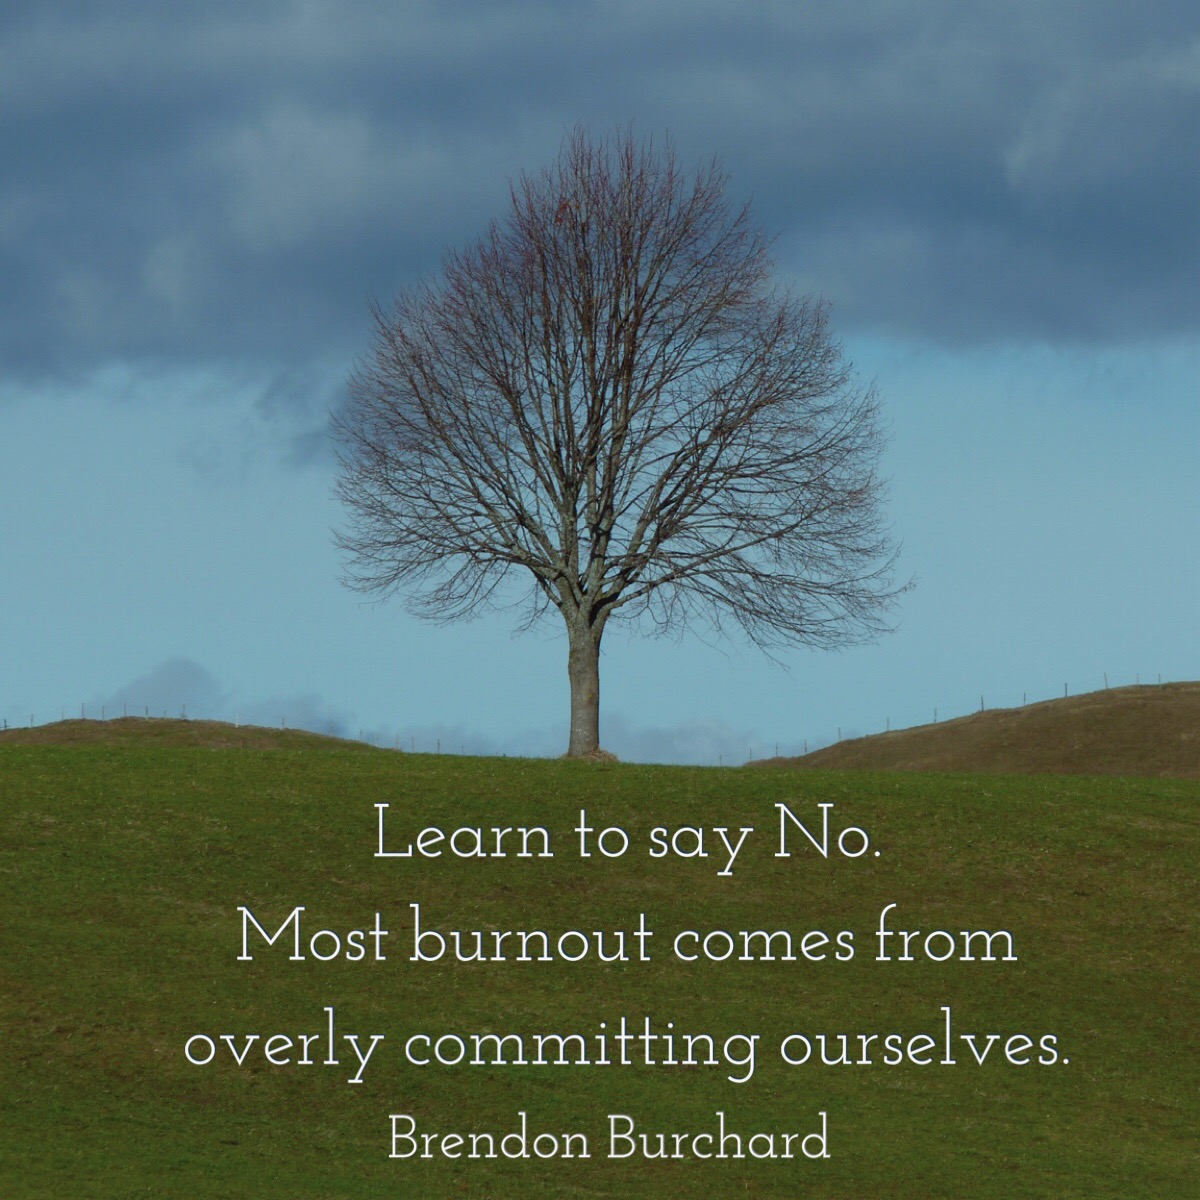 Learn to Say No. Most burnout comes from overly committing ourselves. Brendon Burchard.